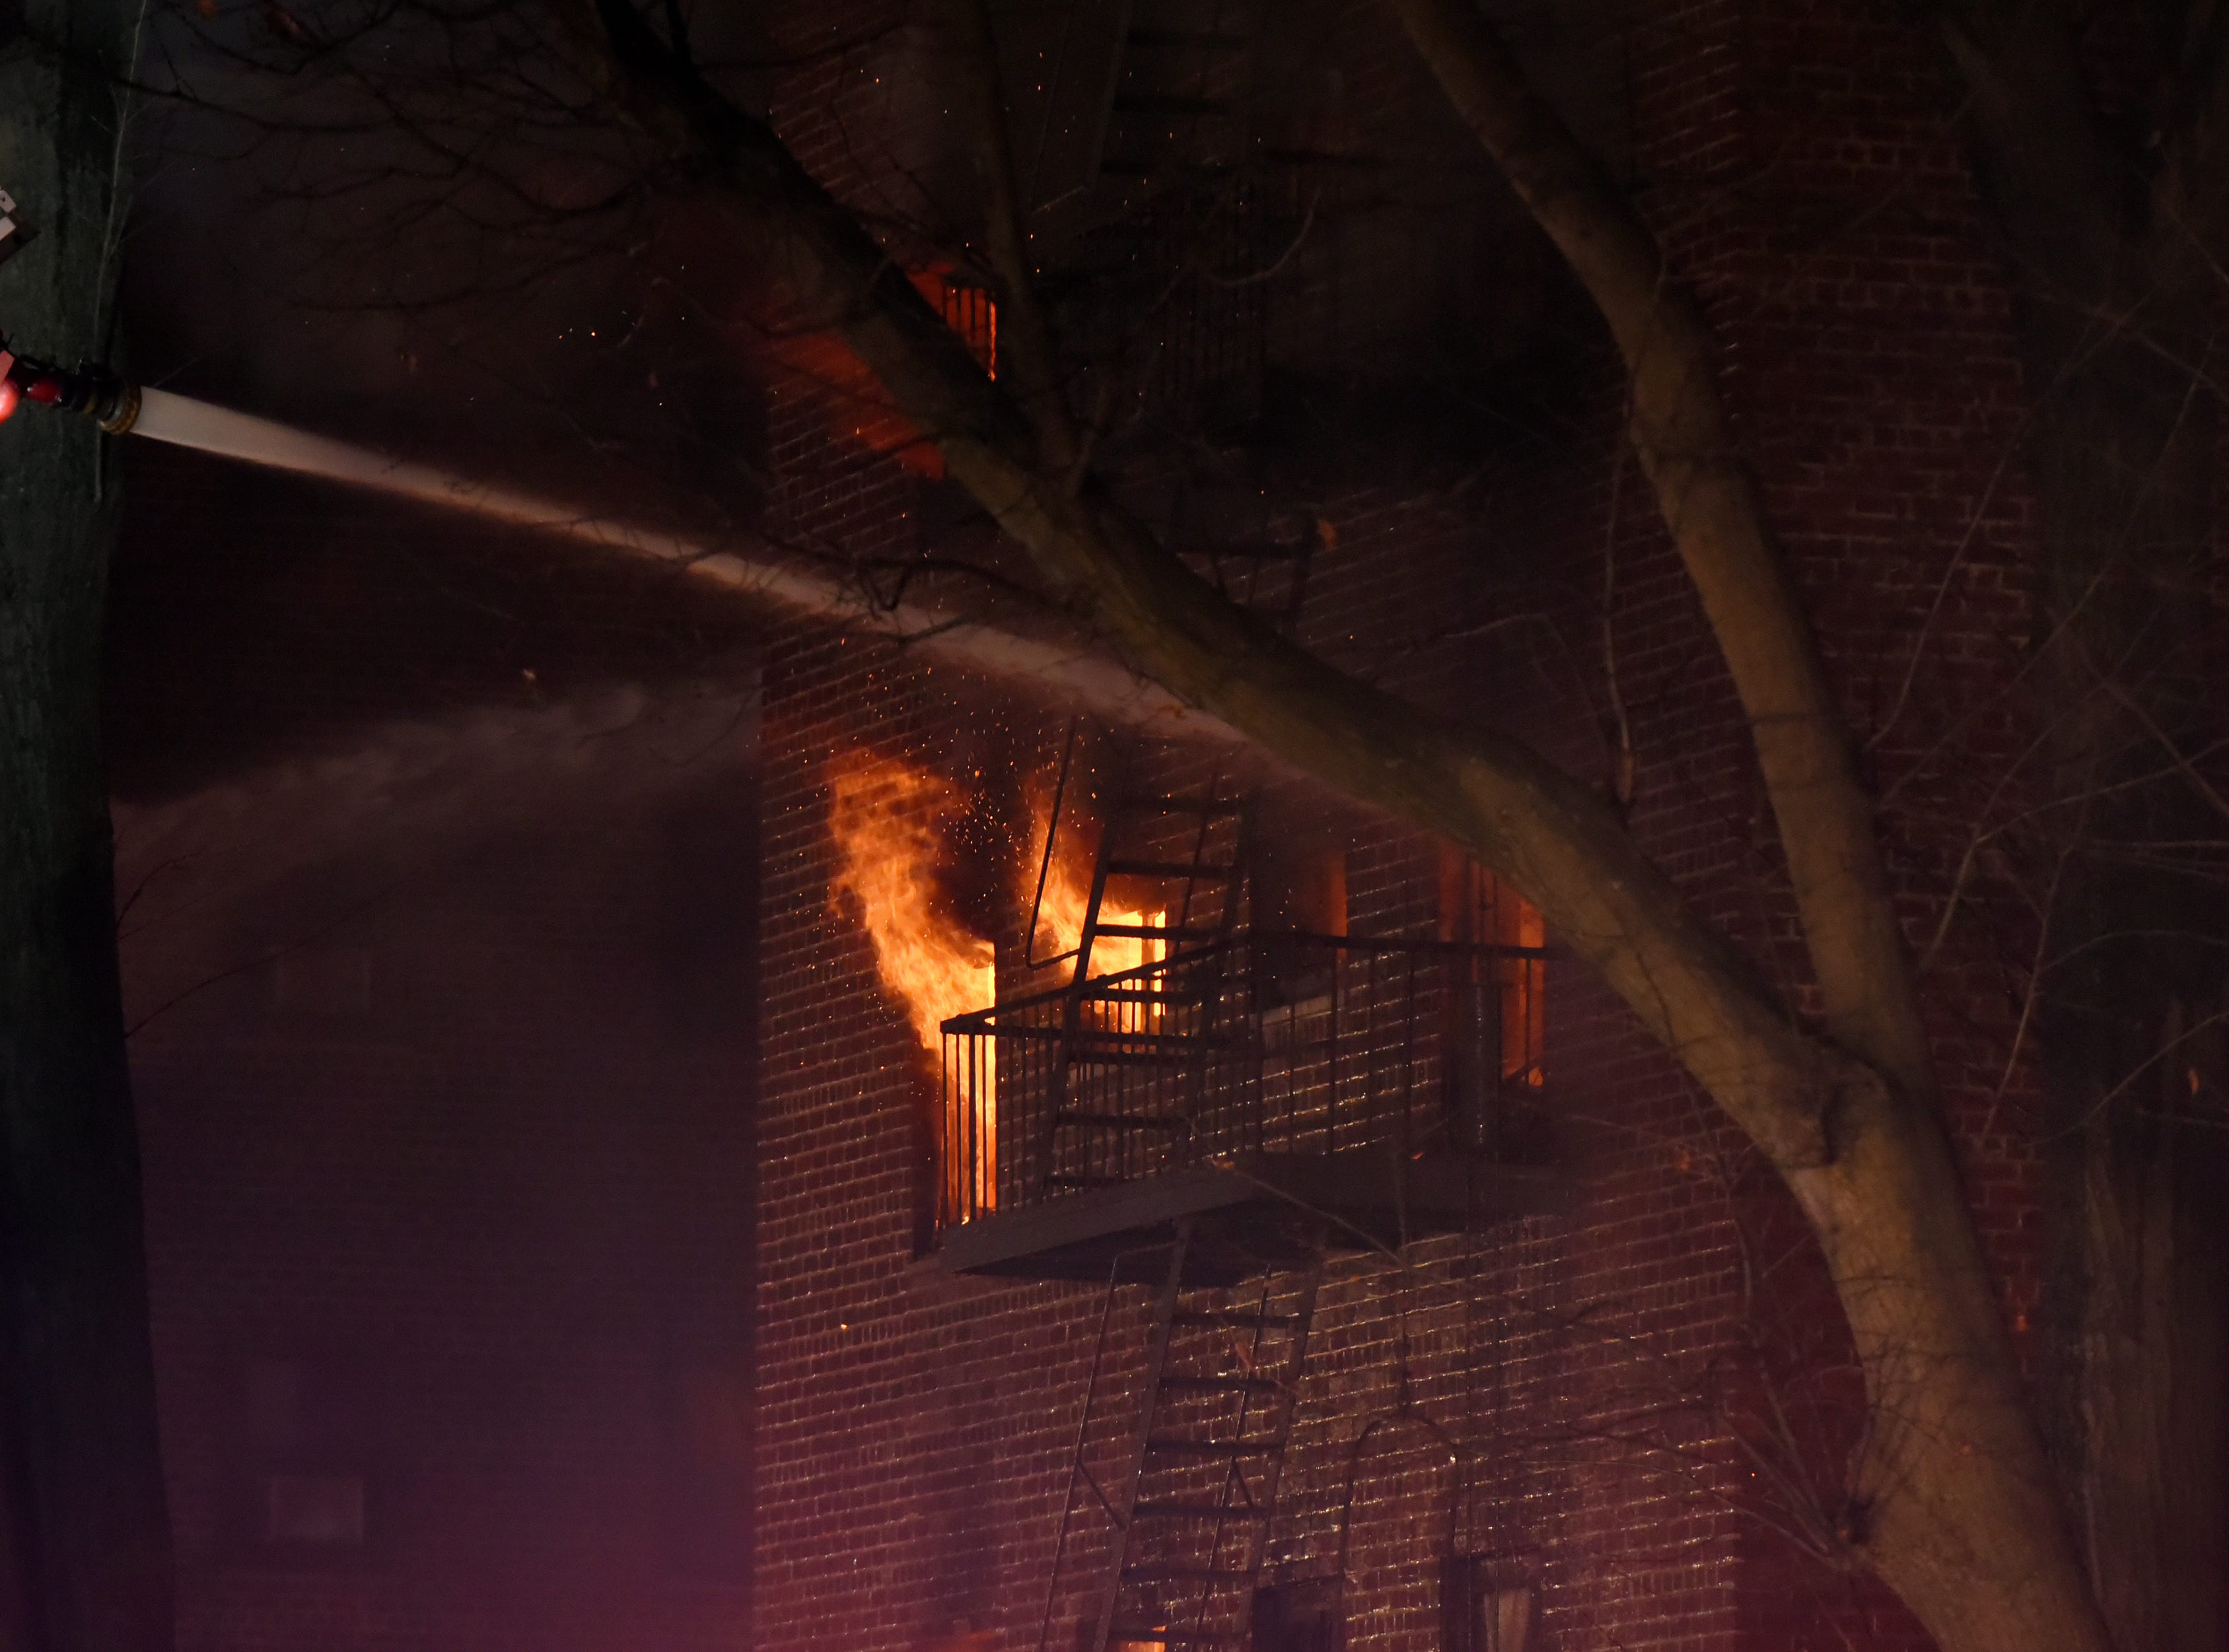 Firefighters battle a fire as it blazes at the Linwood Apartments in Fort Lee on Thursday February 14, 2019.